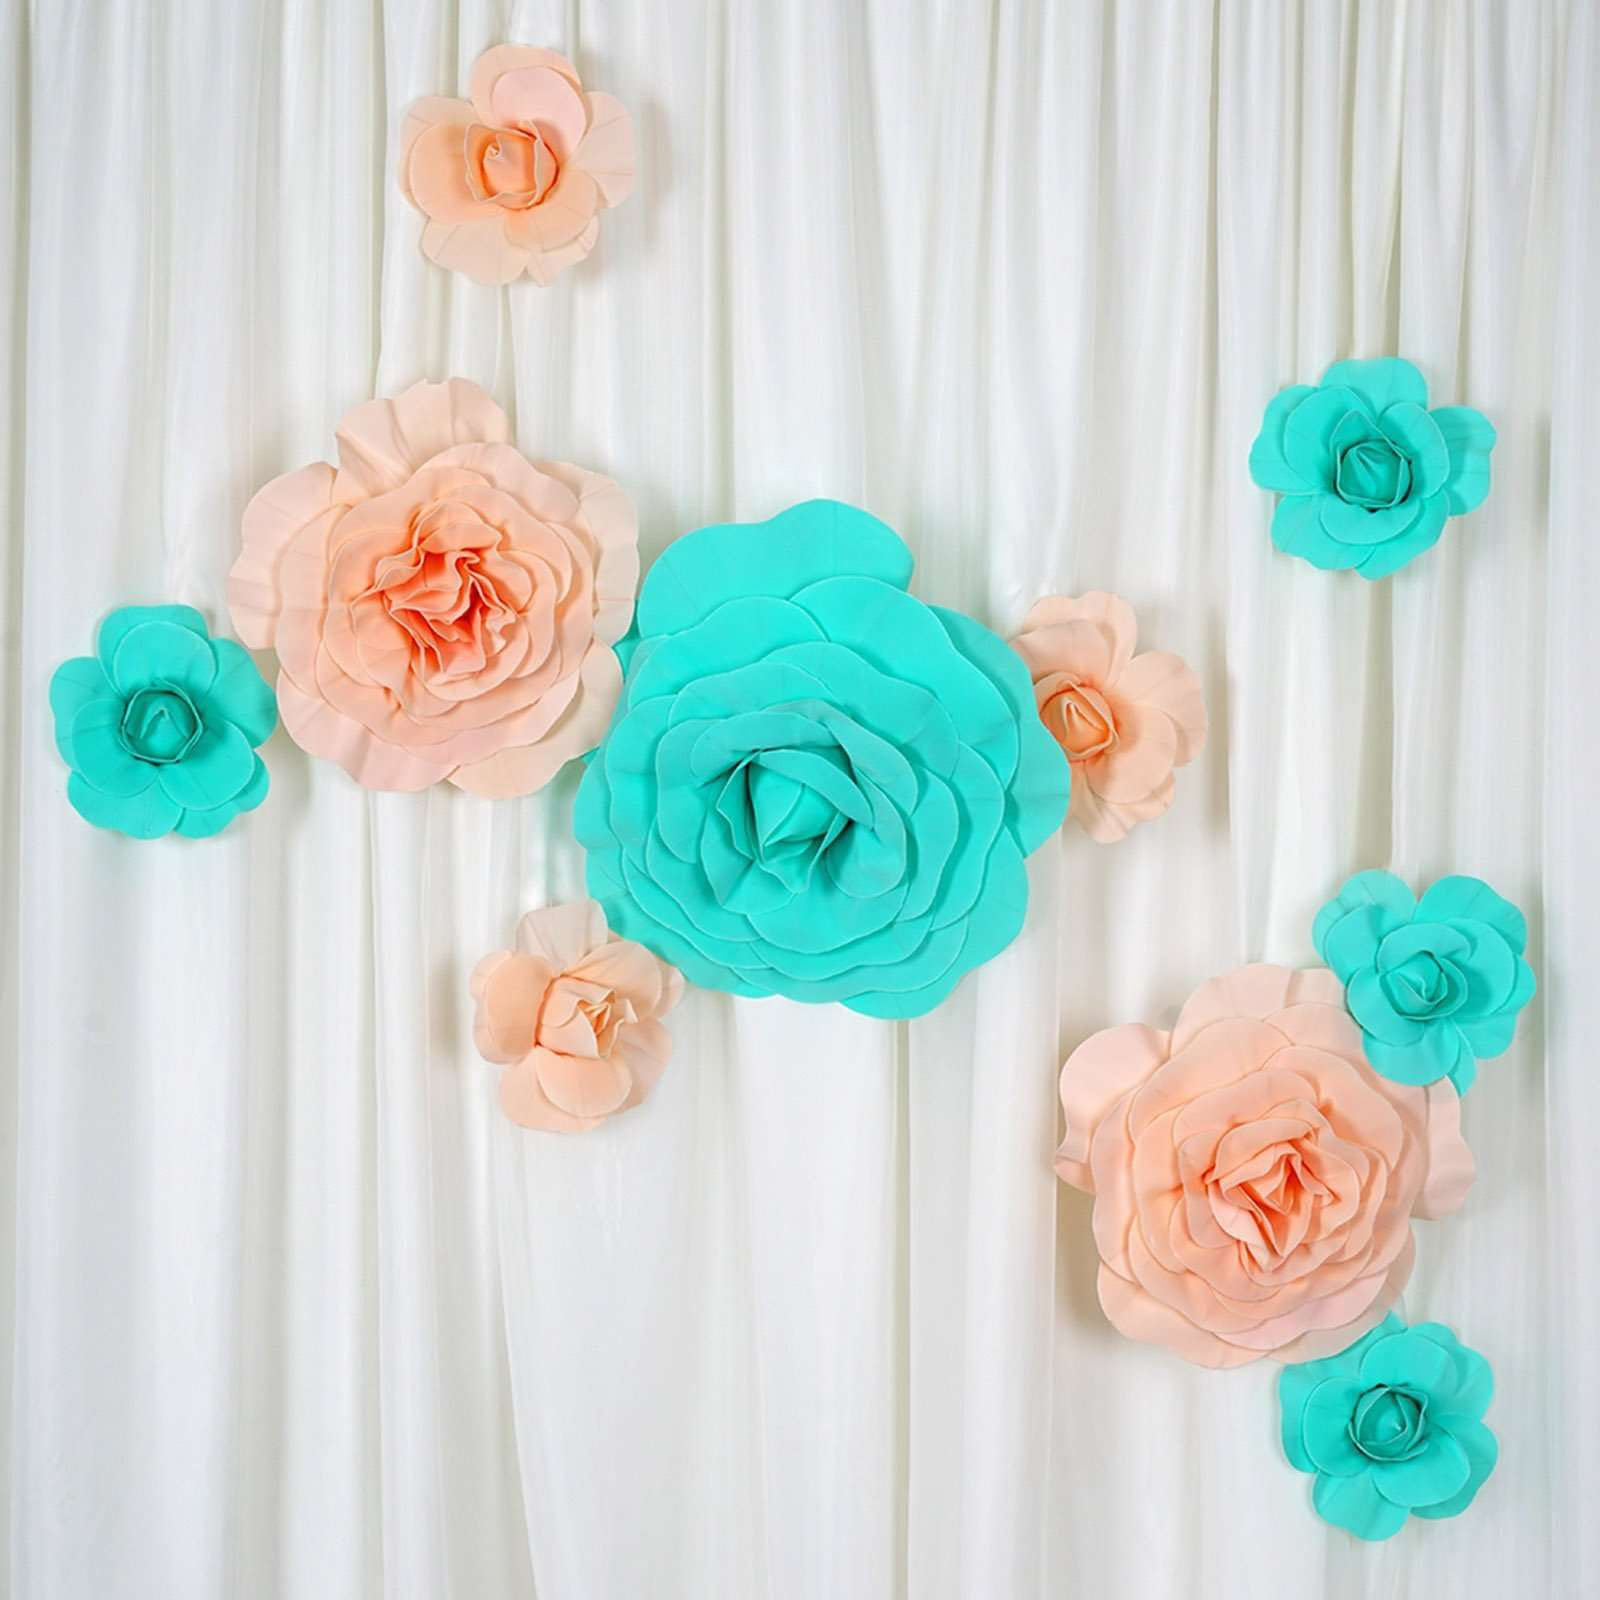 12 Large Real Touch White Artificial Foam Paper Craft Rose Diy 3d Artificial Flowers For Wedding Room Wall Decoration 4 Pcs